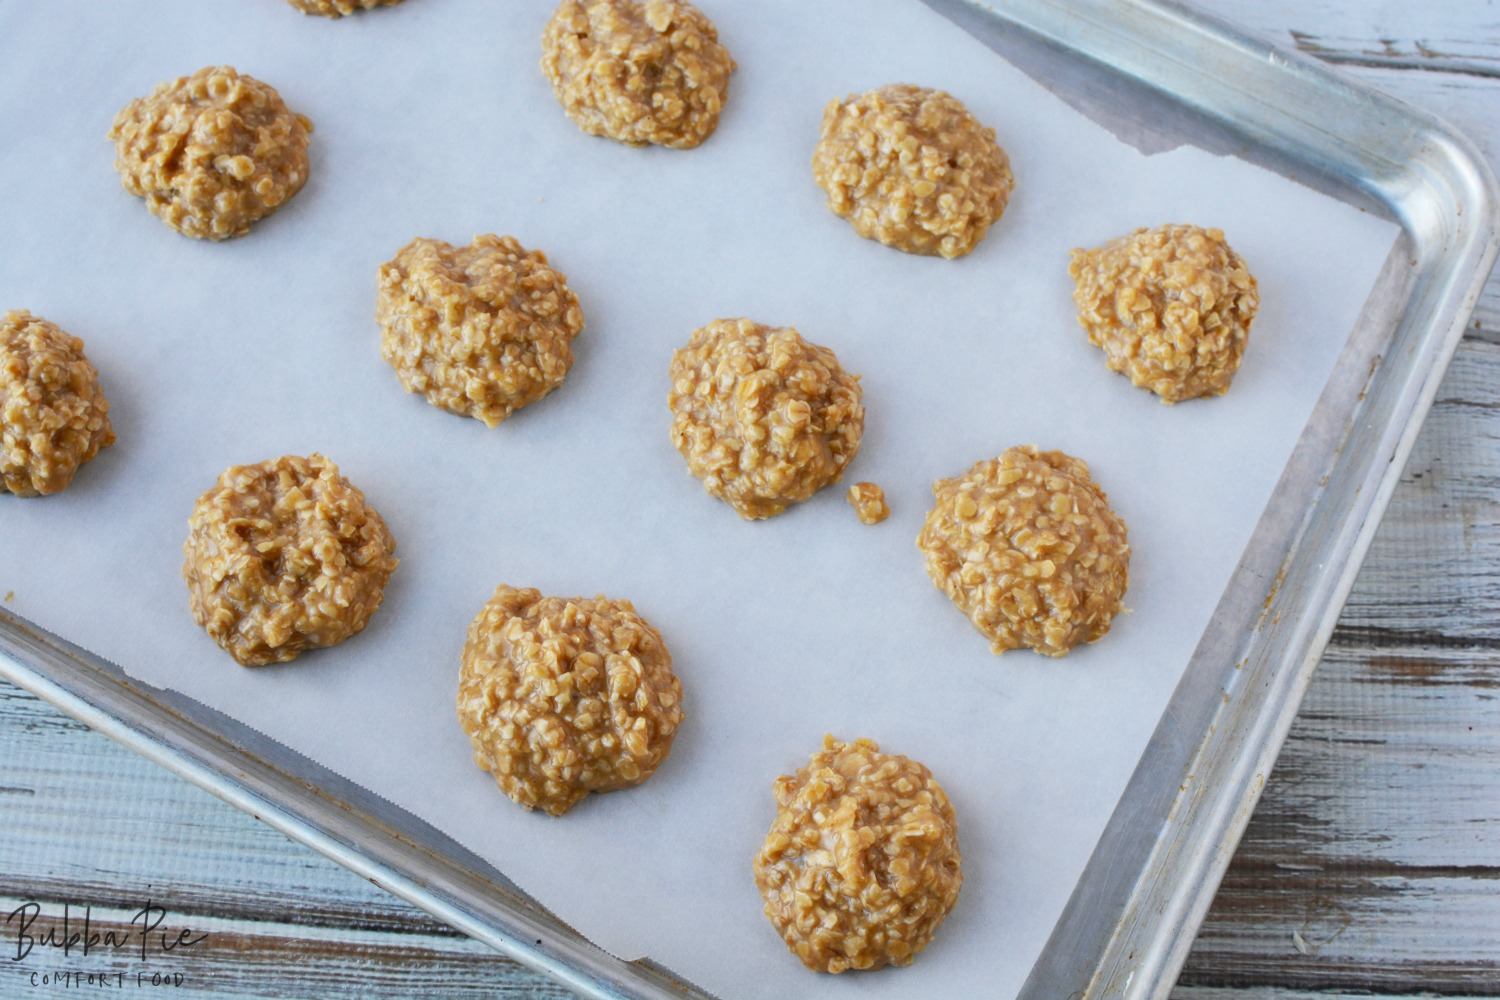 Put the cookies on a parchment lined baking sheet for this No Bake Peanut butter Cookies Recipe